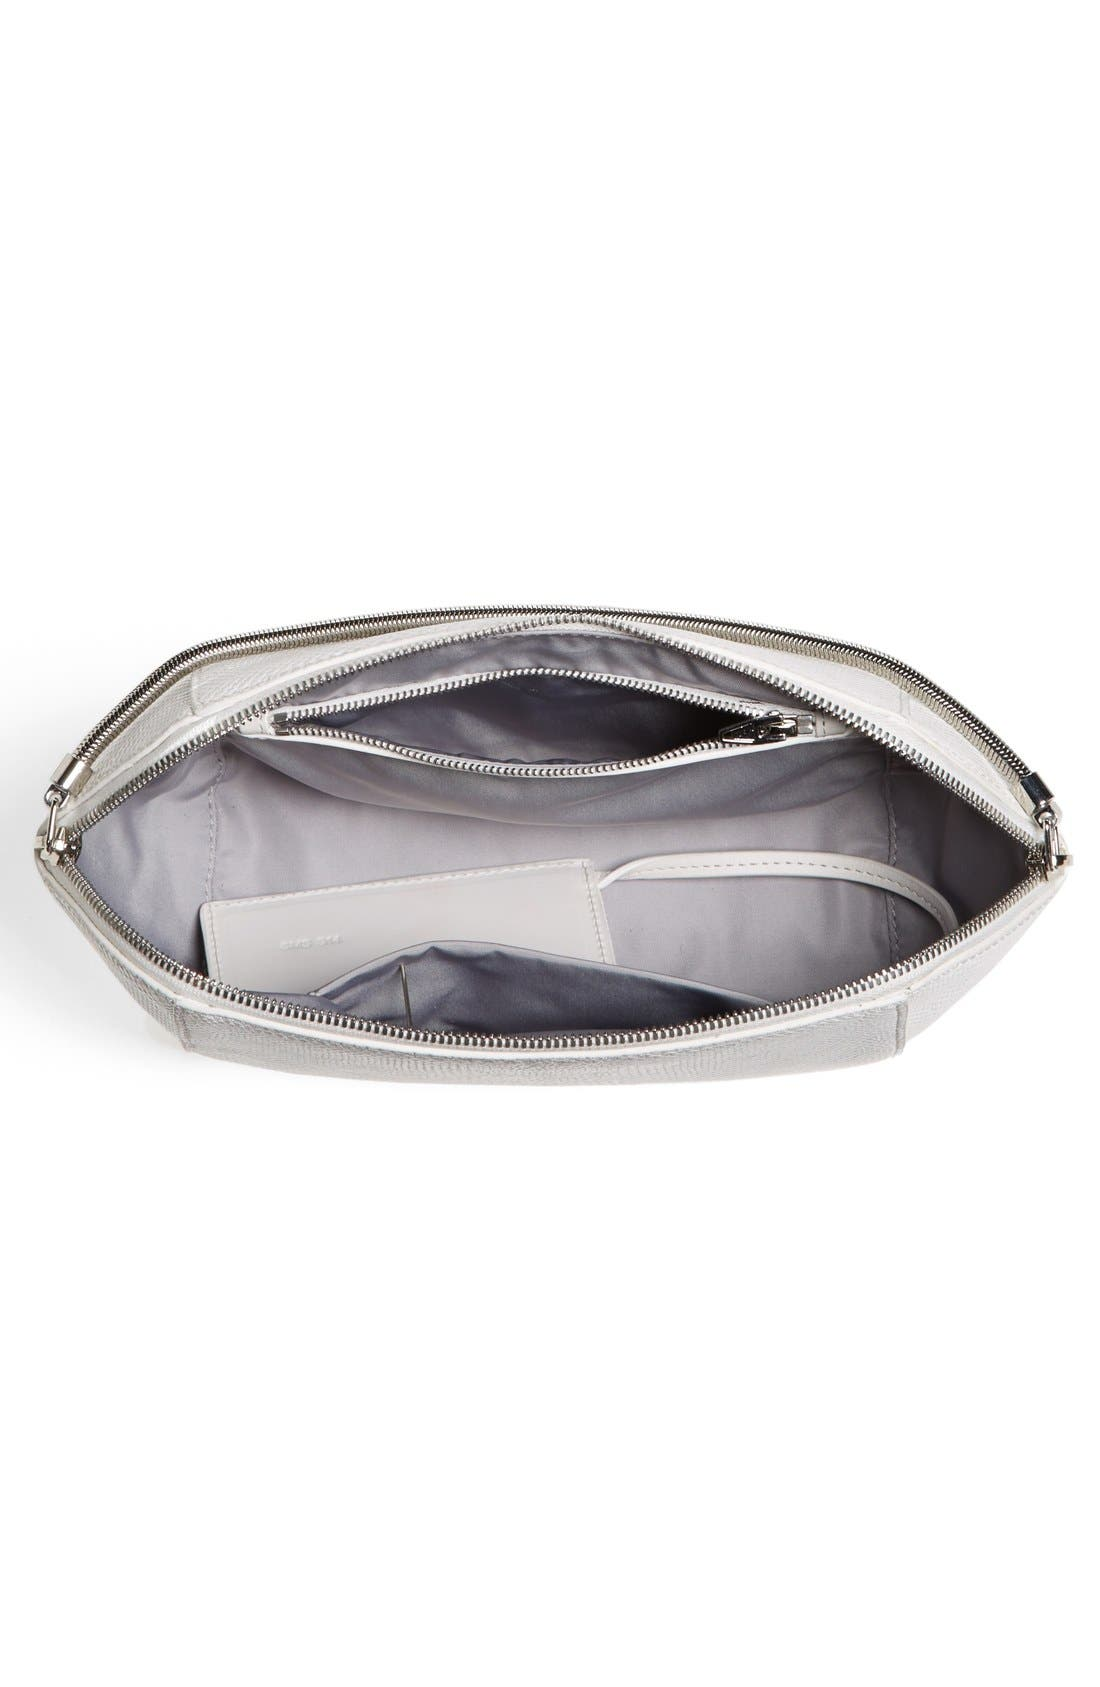 Alternate Image 2  - Alexander Wang 'Chastity' Leather Clutch